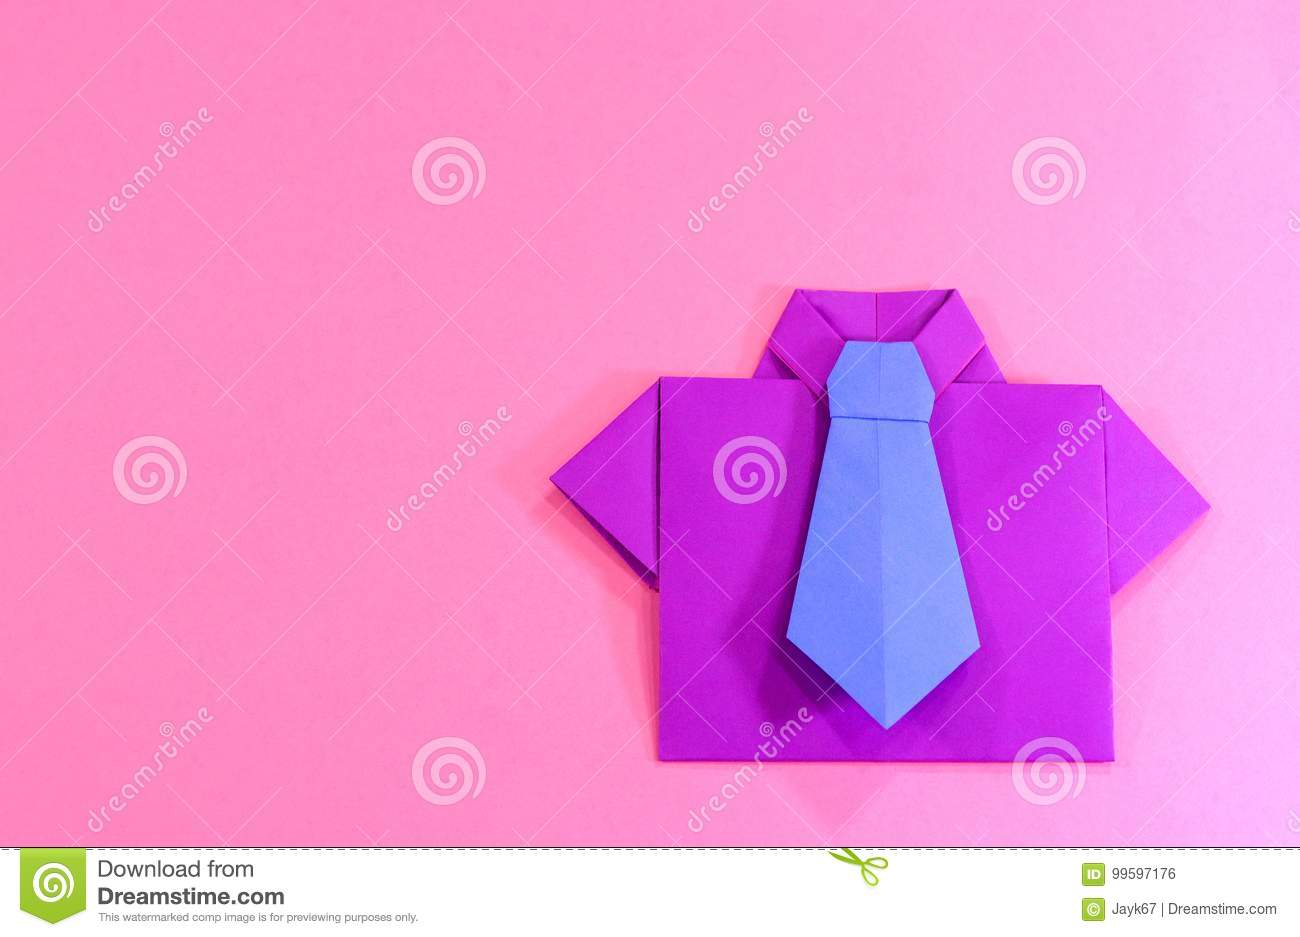 Origami Shirt Stock Photo Image Of Dads Abstract Colorful 99597176